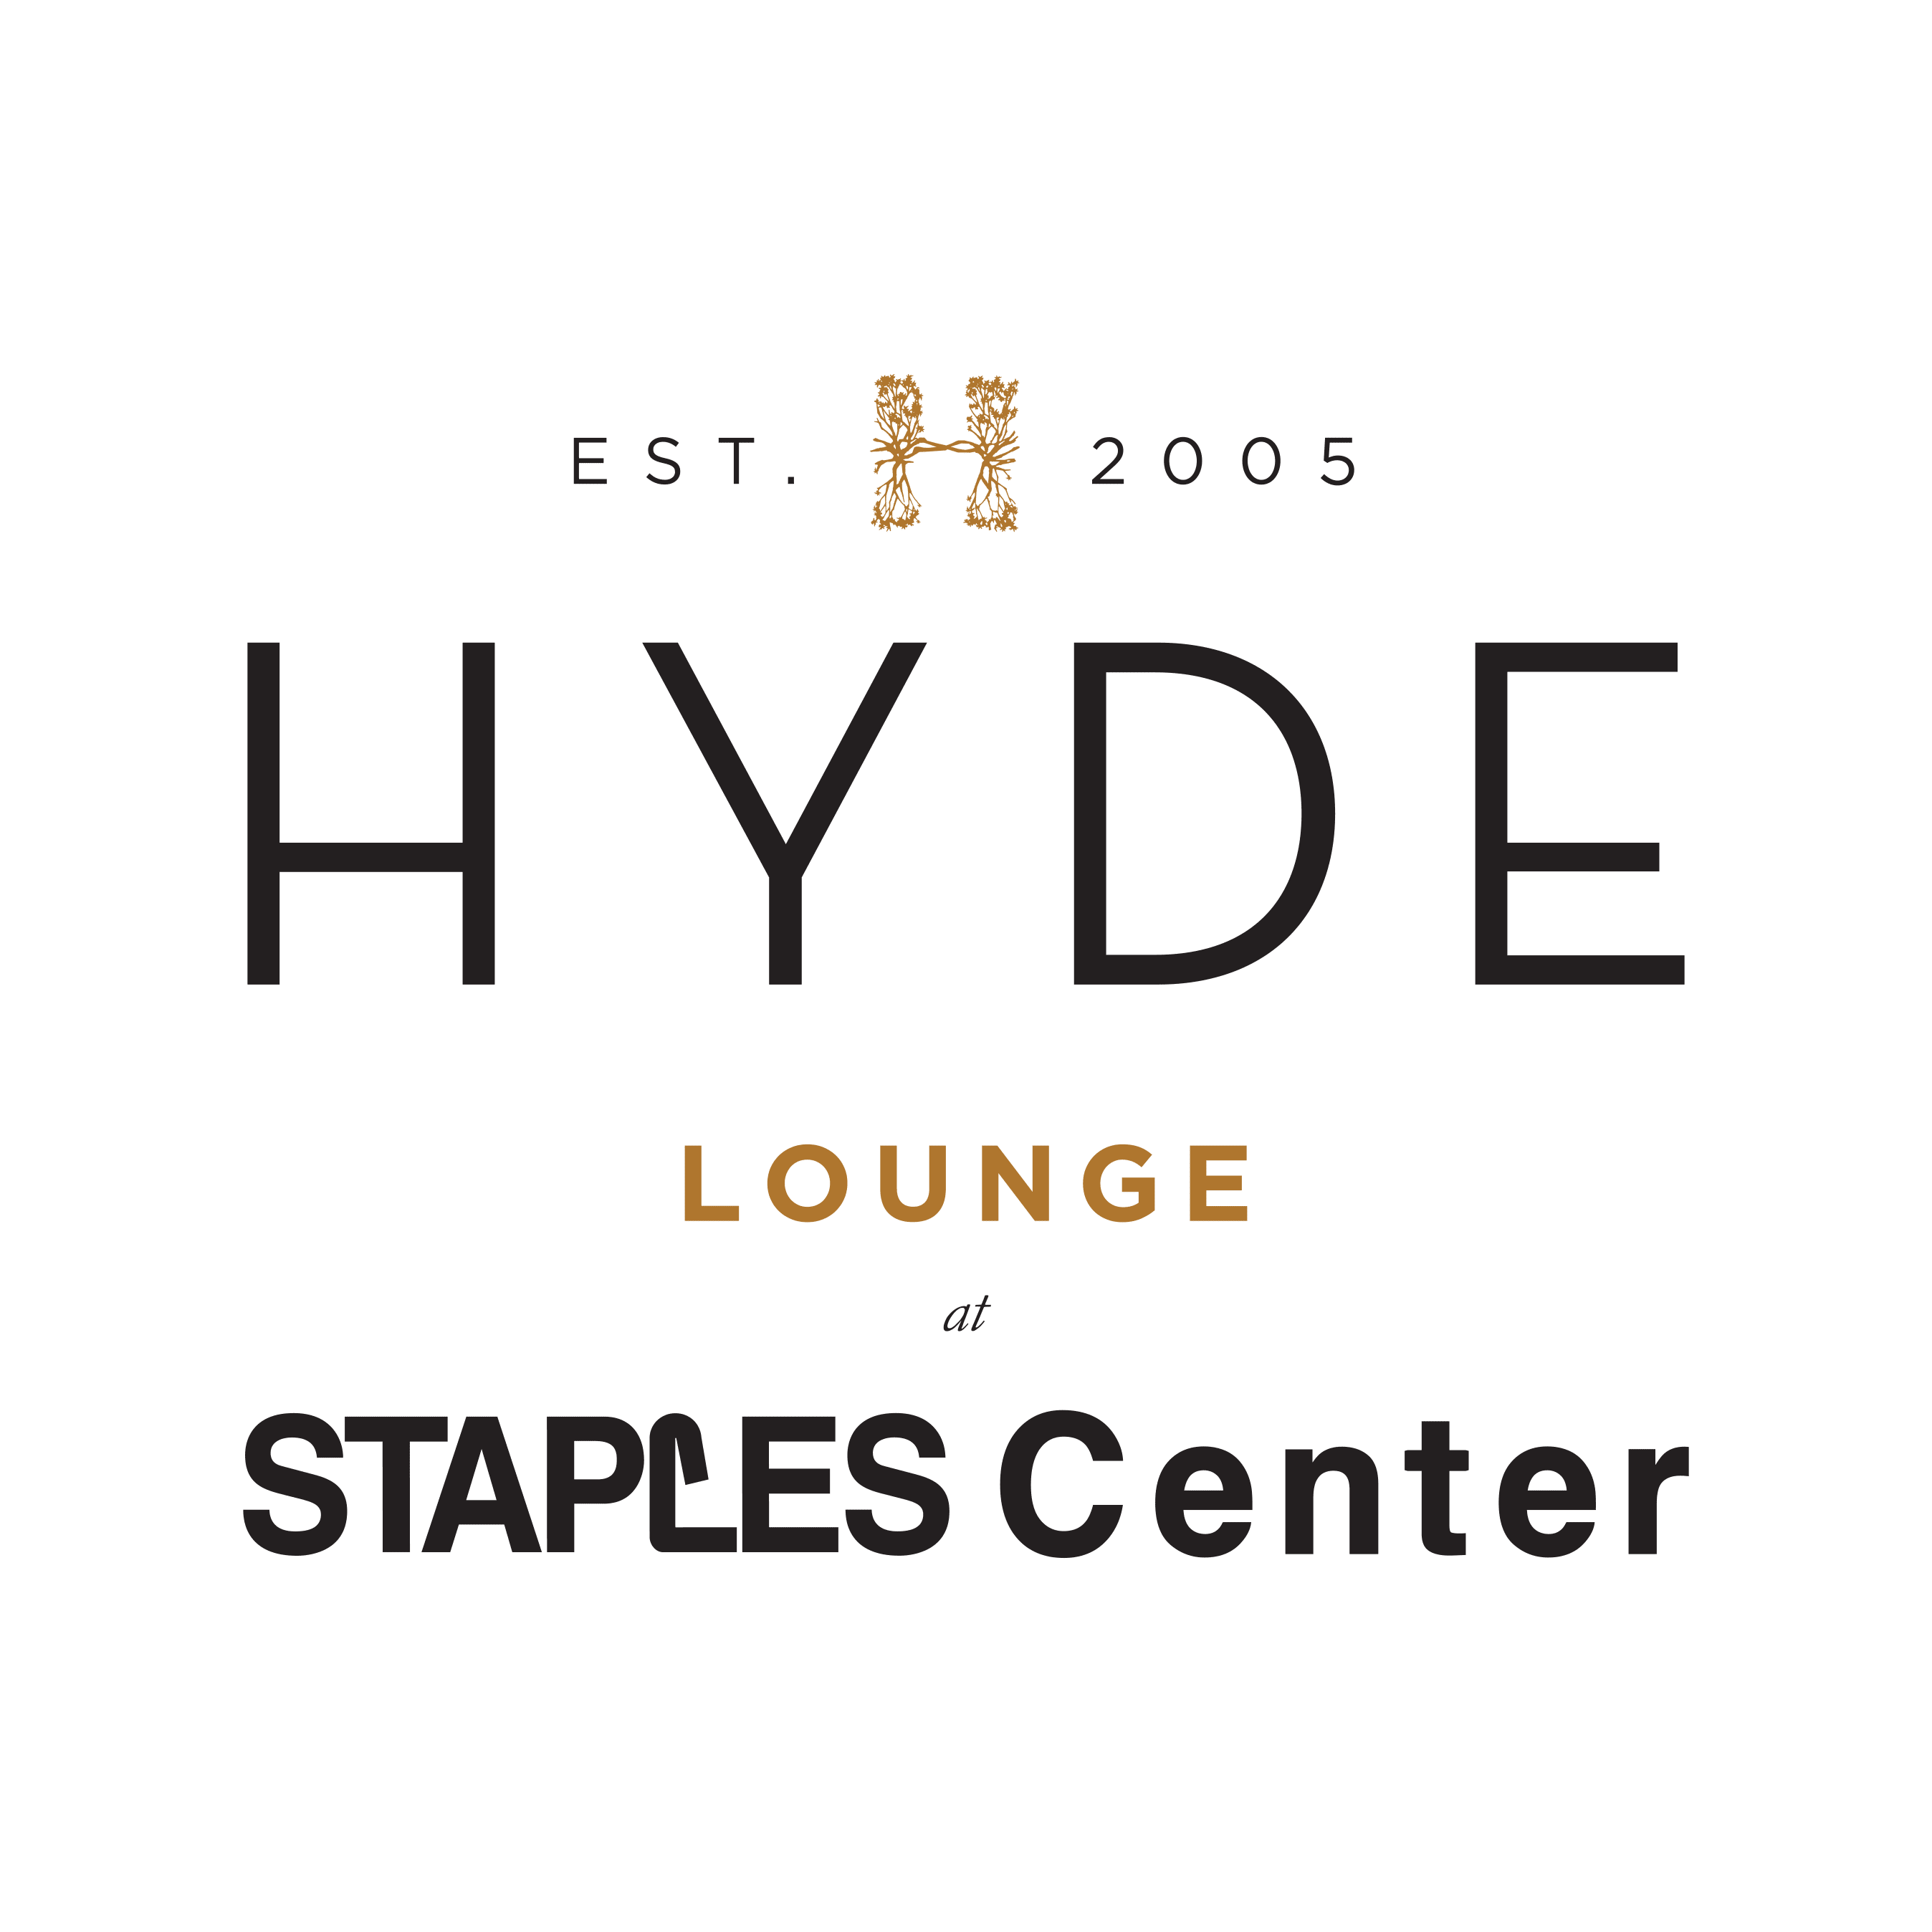 Hyde Lounge at Staples Center